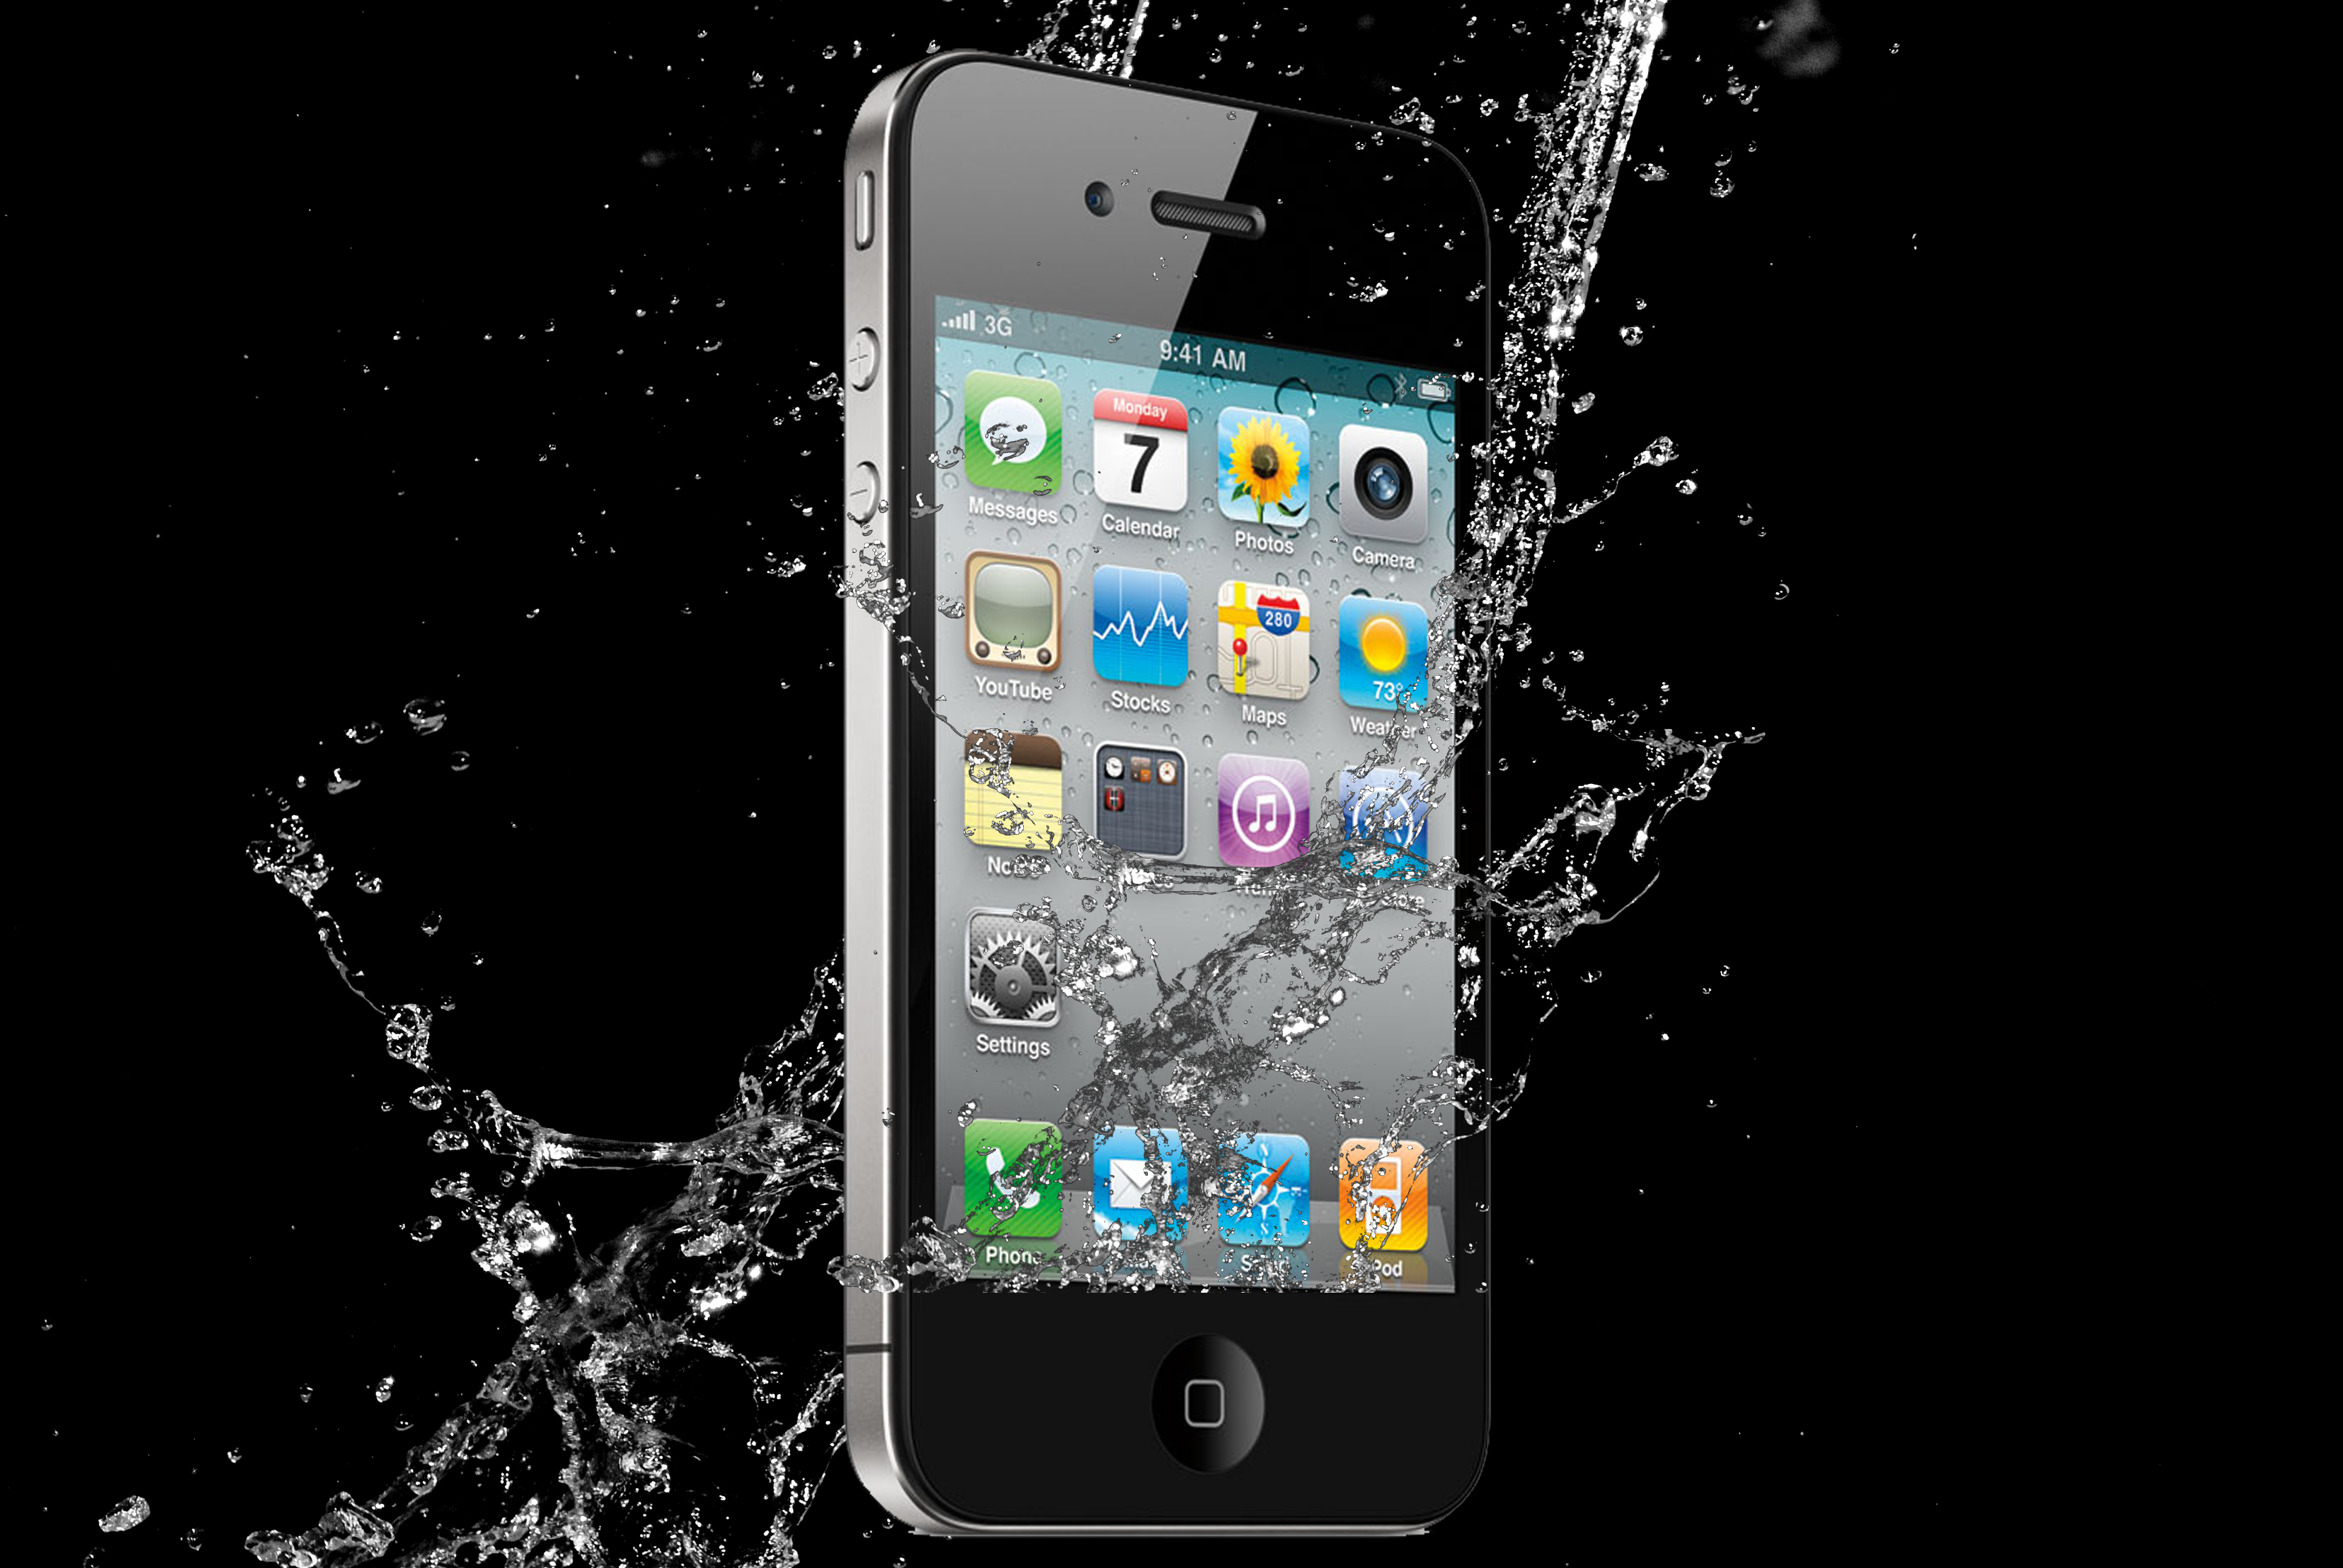 iphone-4s-water-damage